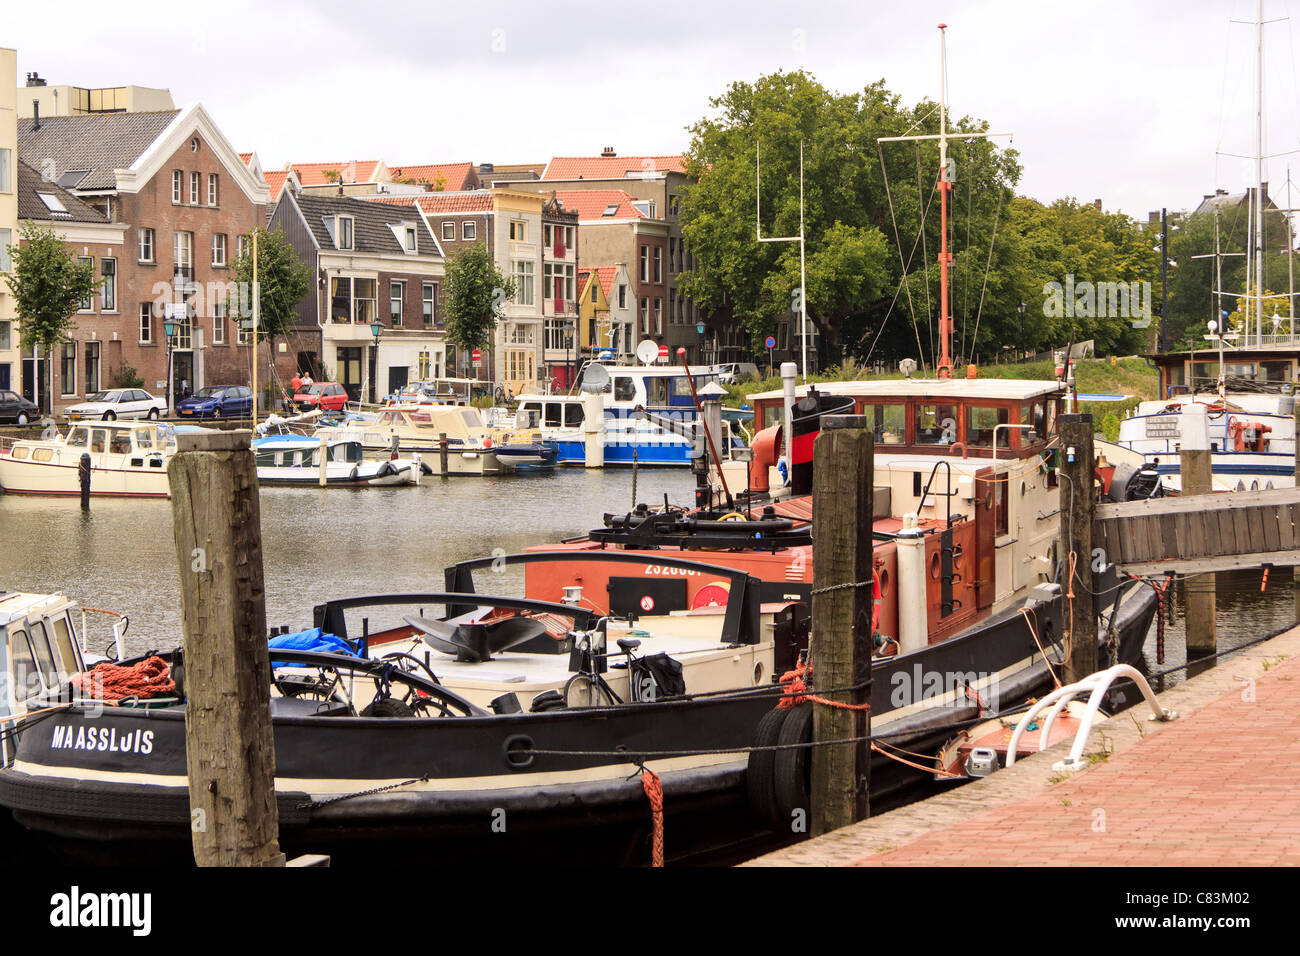 Wooden Dutch barges in the harbour at Delfshaven, Rotterdam, Netherlands Stock Photo